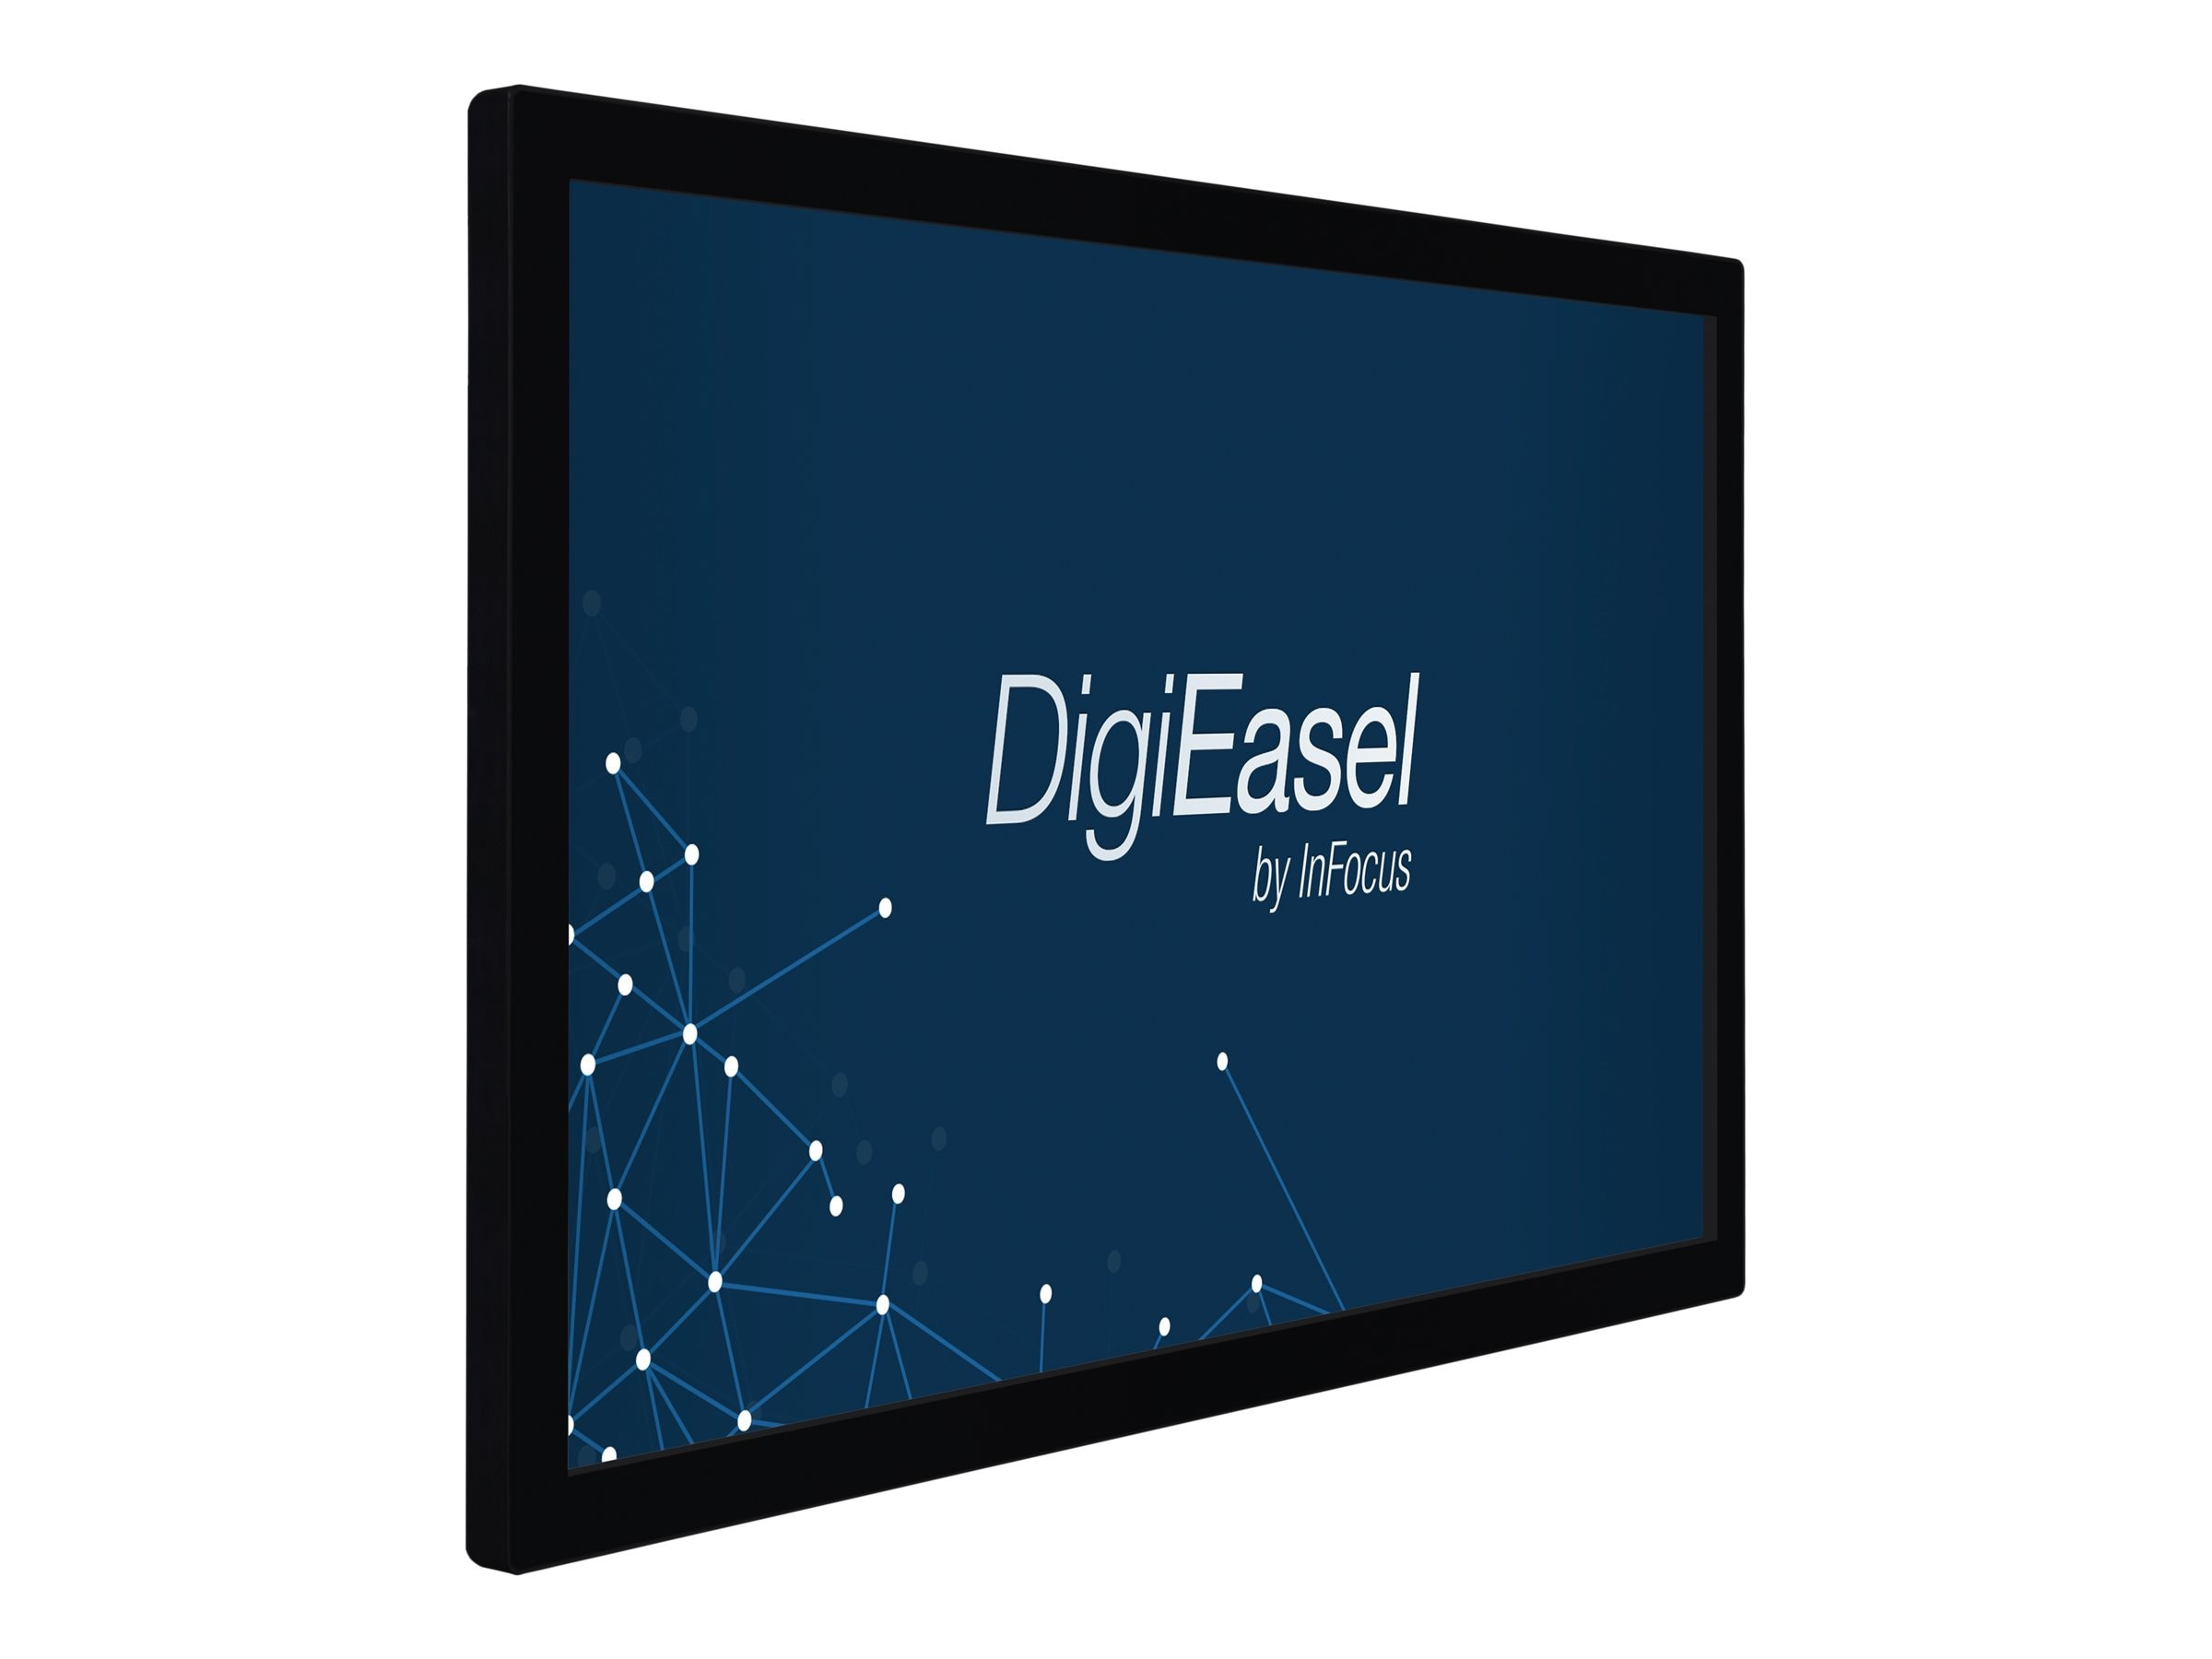 InFocus 40 Jtouch DigiEasel Full HD LED-LCD Interactive Whiteboard Display with Wireless Collaboration, INF4030CB